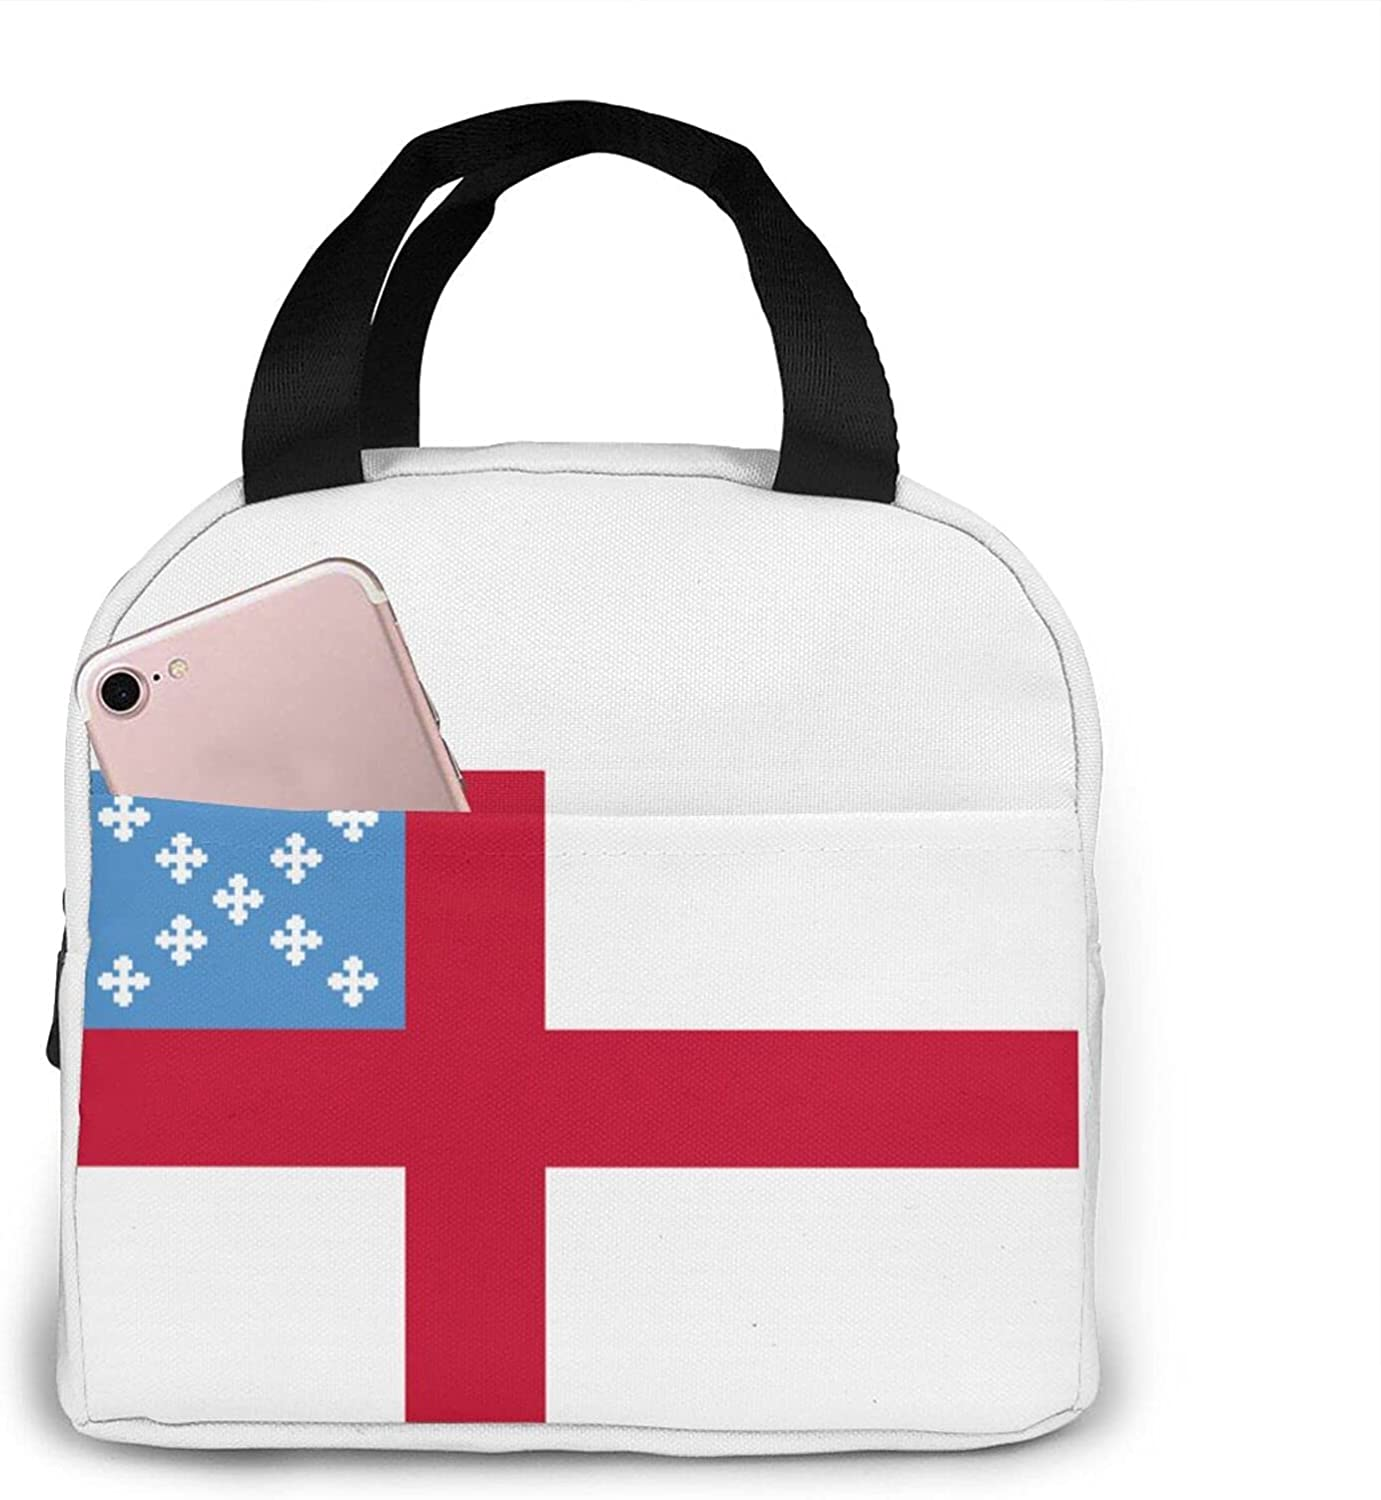 Episcopal Flag Convenient Insulated Thermal High 4 New sales years warranty Lunch Bag Tote